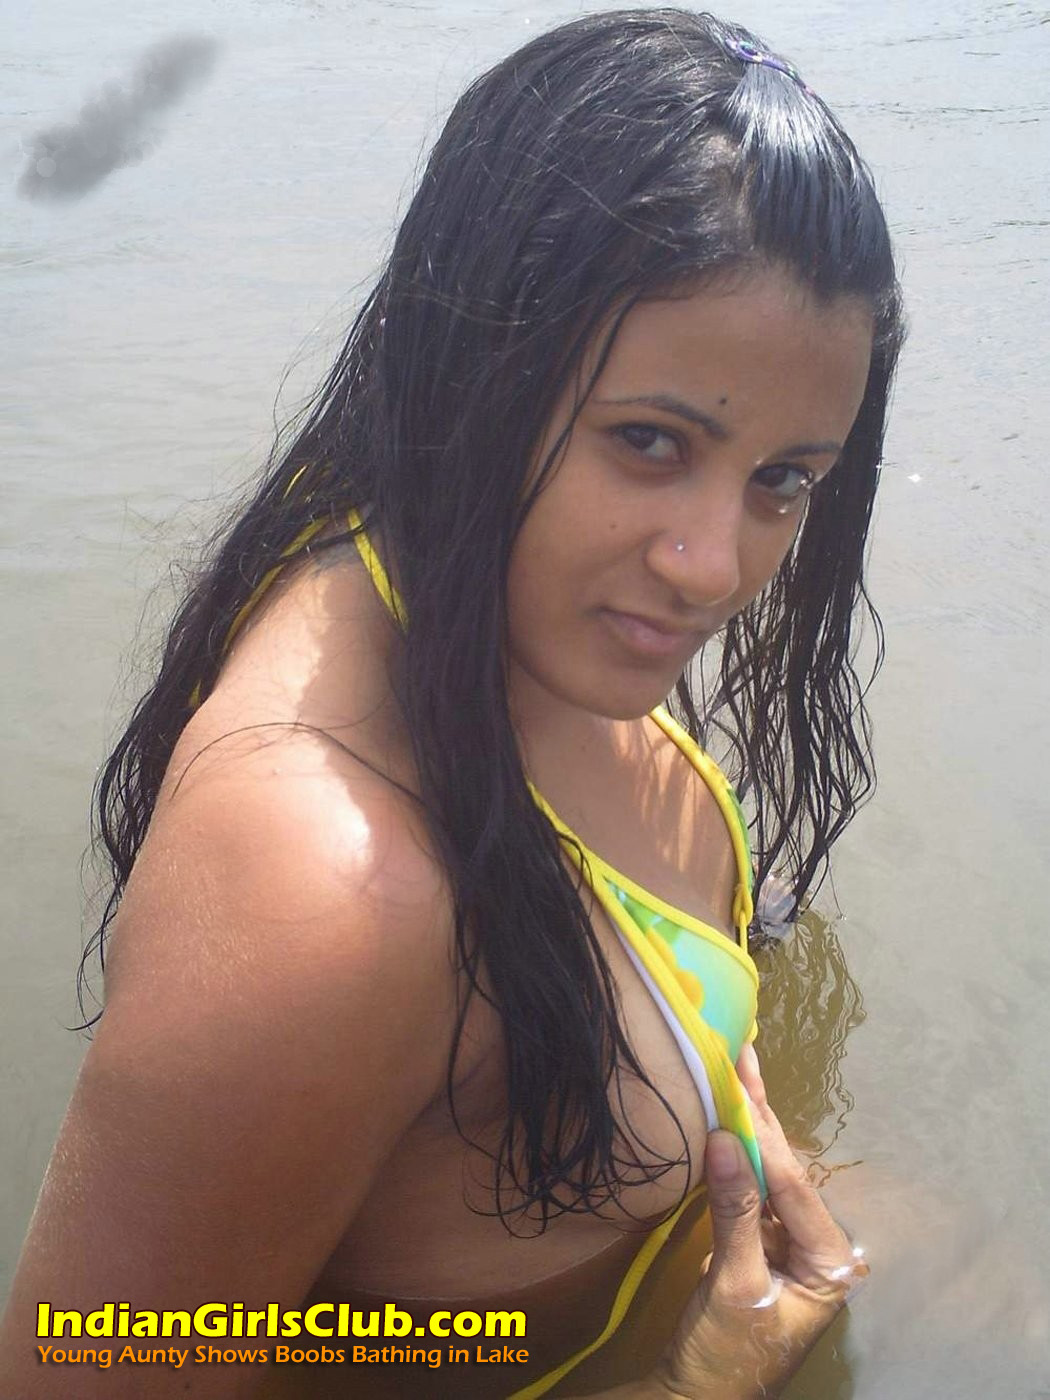 Srilankan young nude girl picture — 9